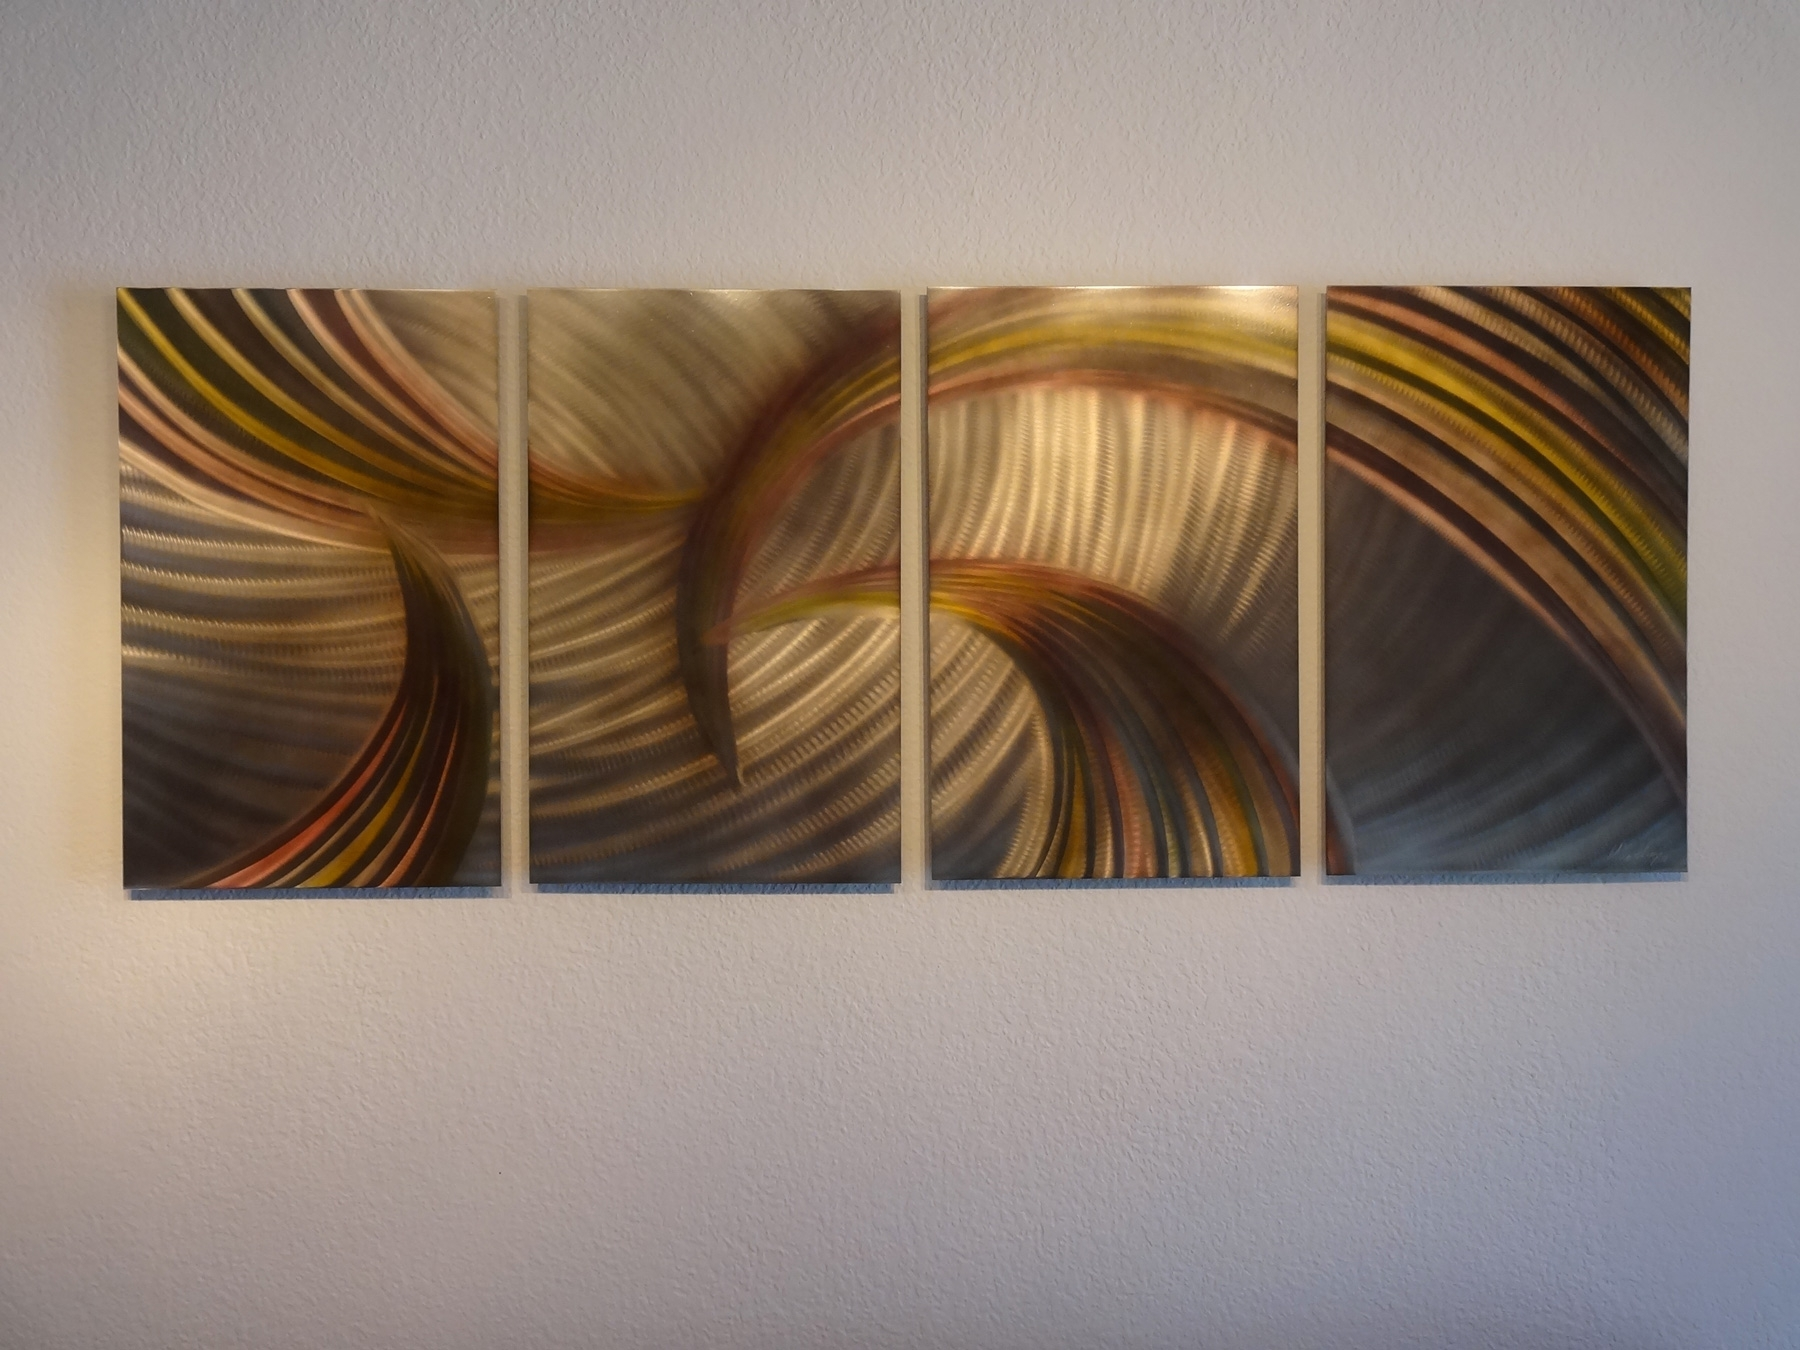 Tempest Bronze – Abstract Metal Wall Art Contemporary Modern Decor Inside Newest Abstract Iron Wall Art (View 14 of 20)